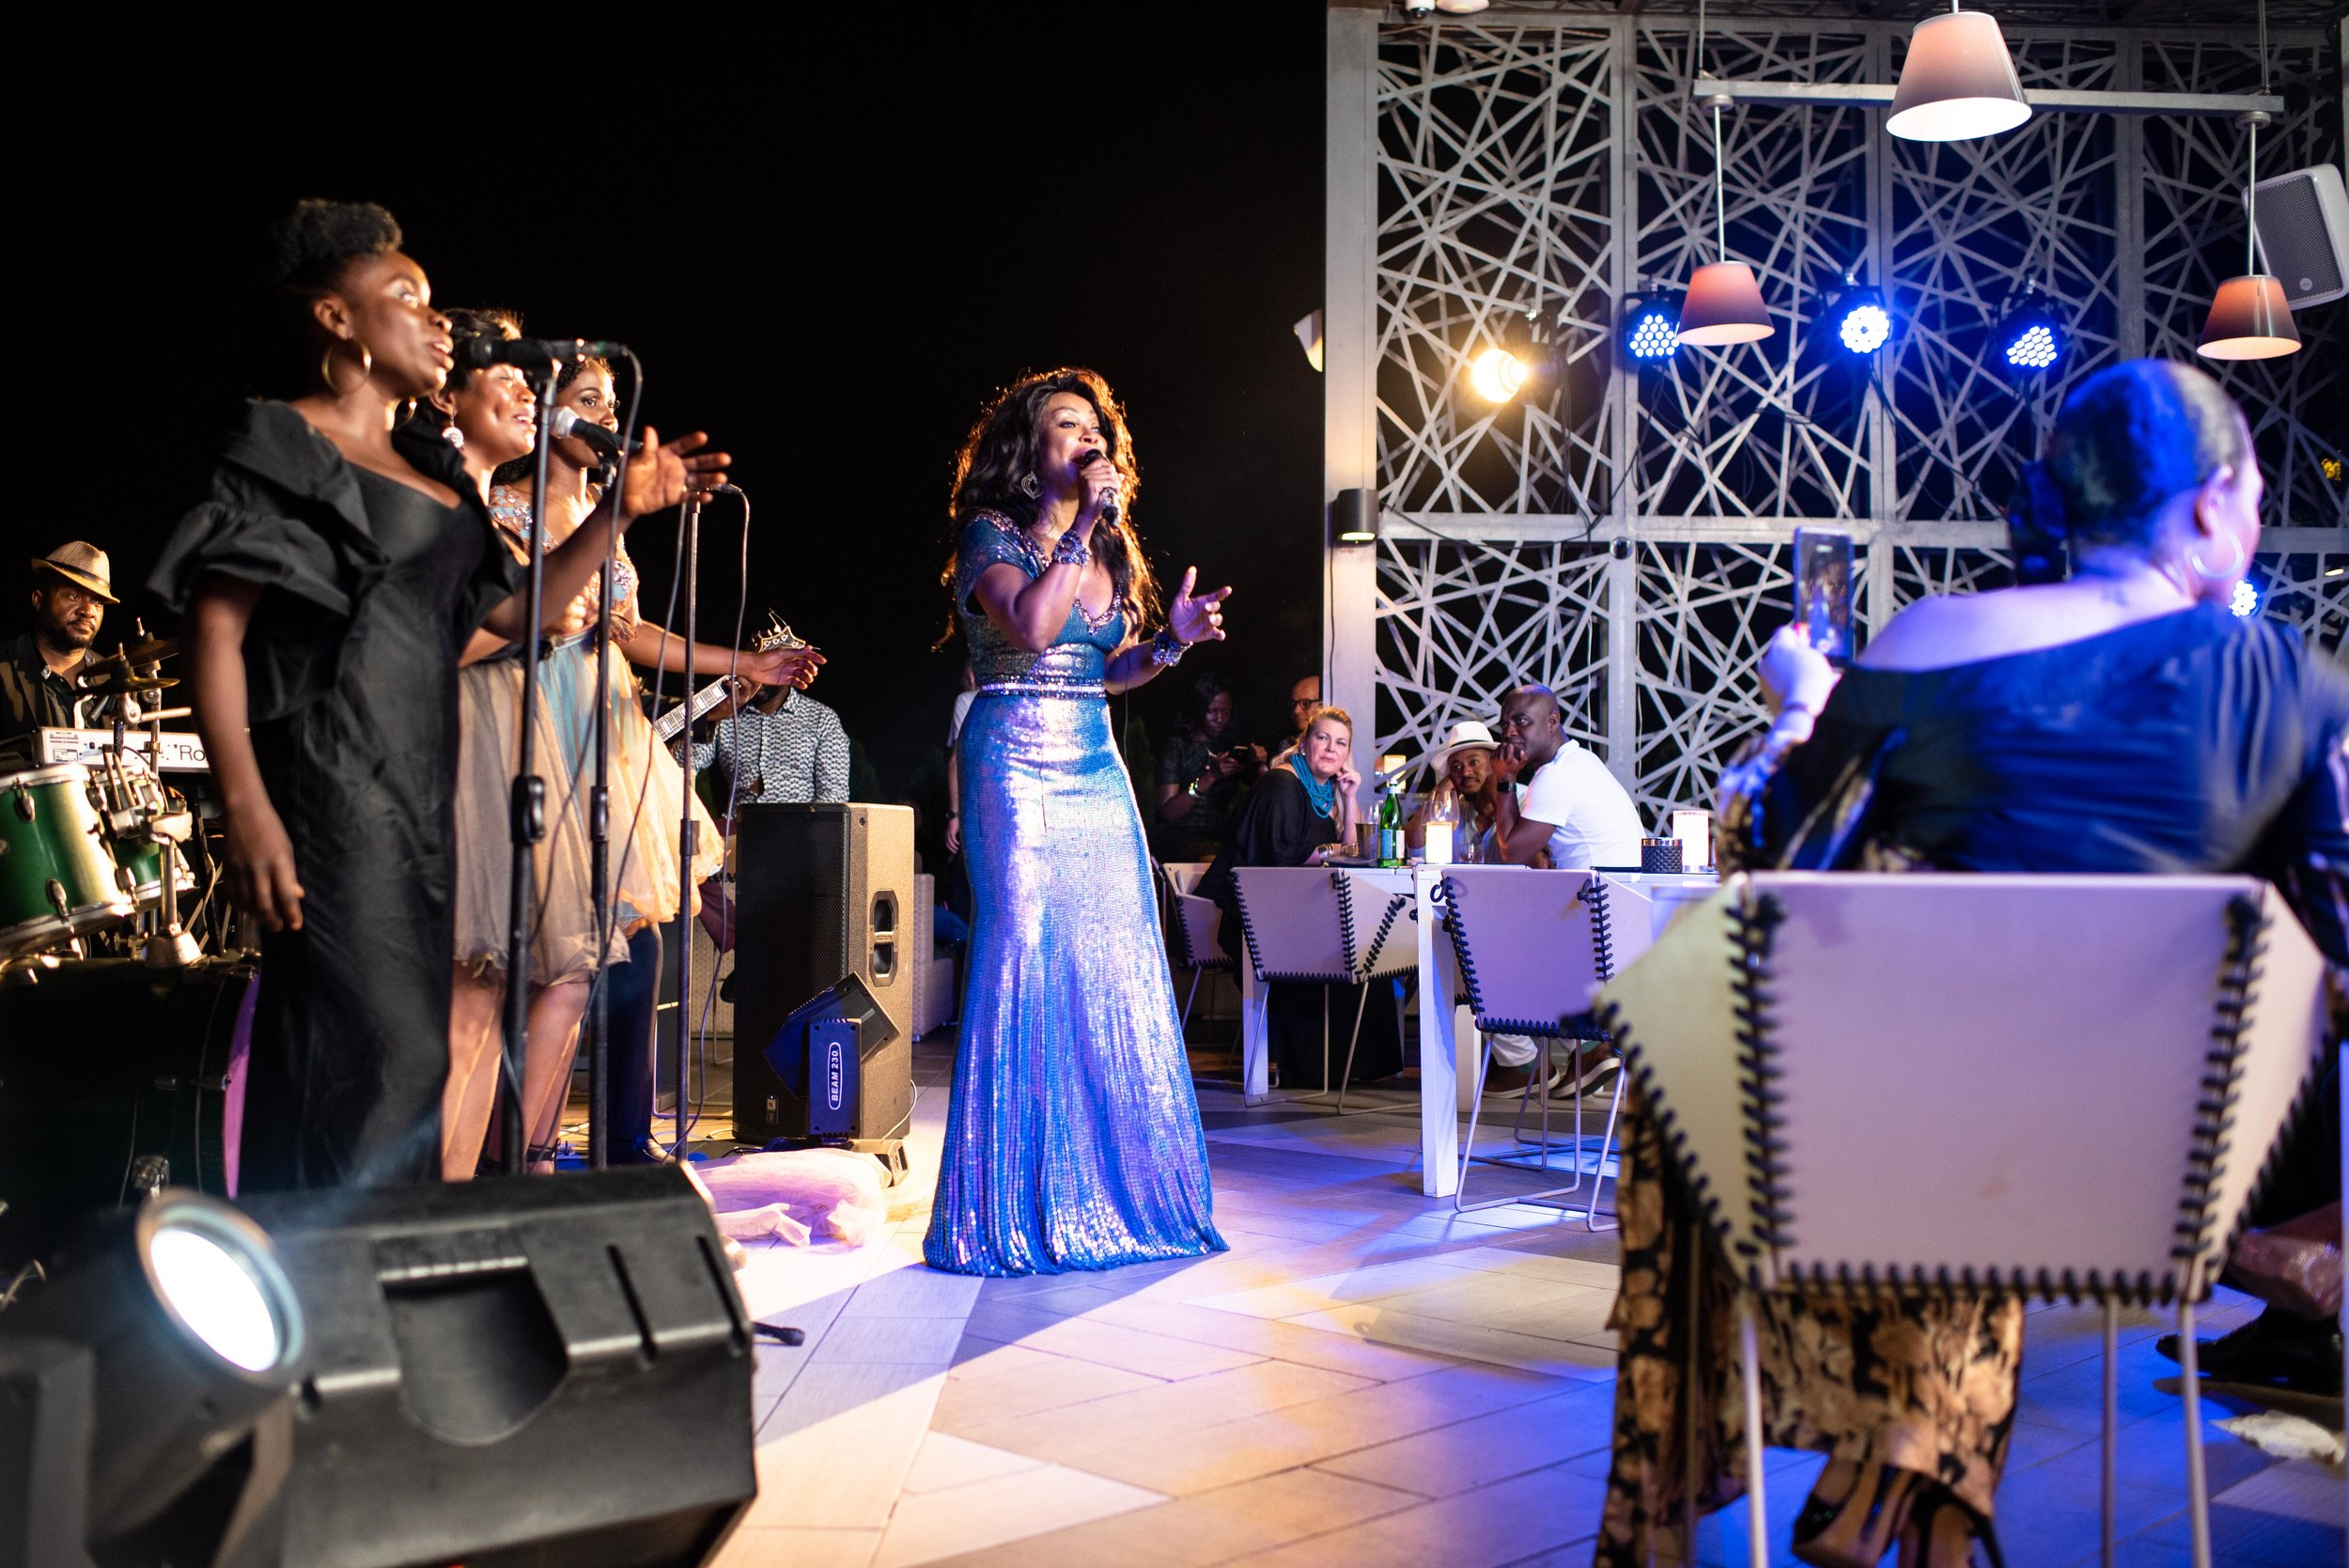 31.09.19-Stephanie Benson's Skybar Performance-30227.jpg